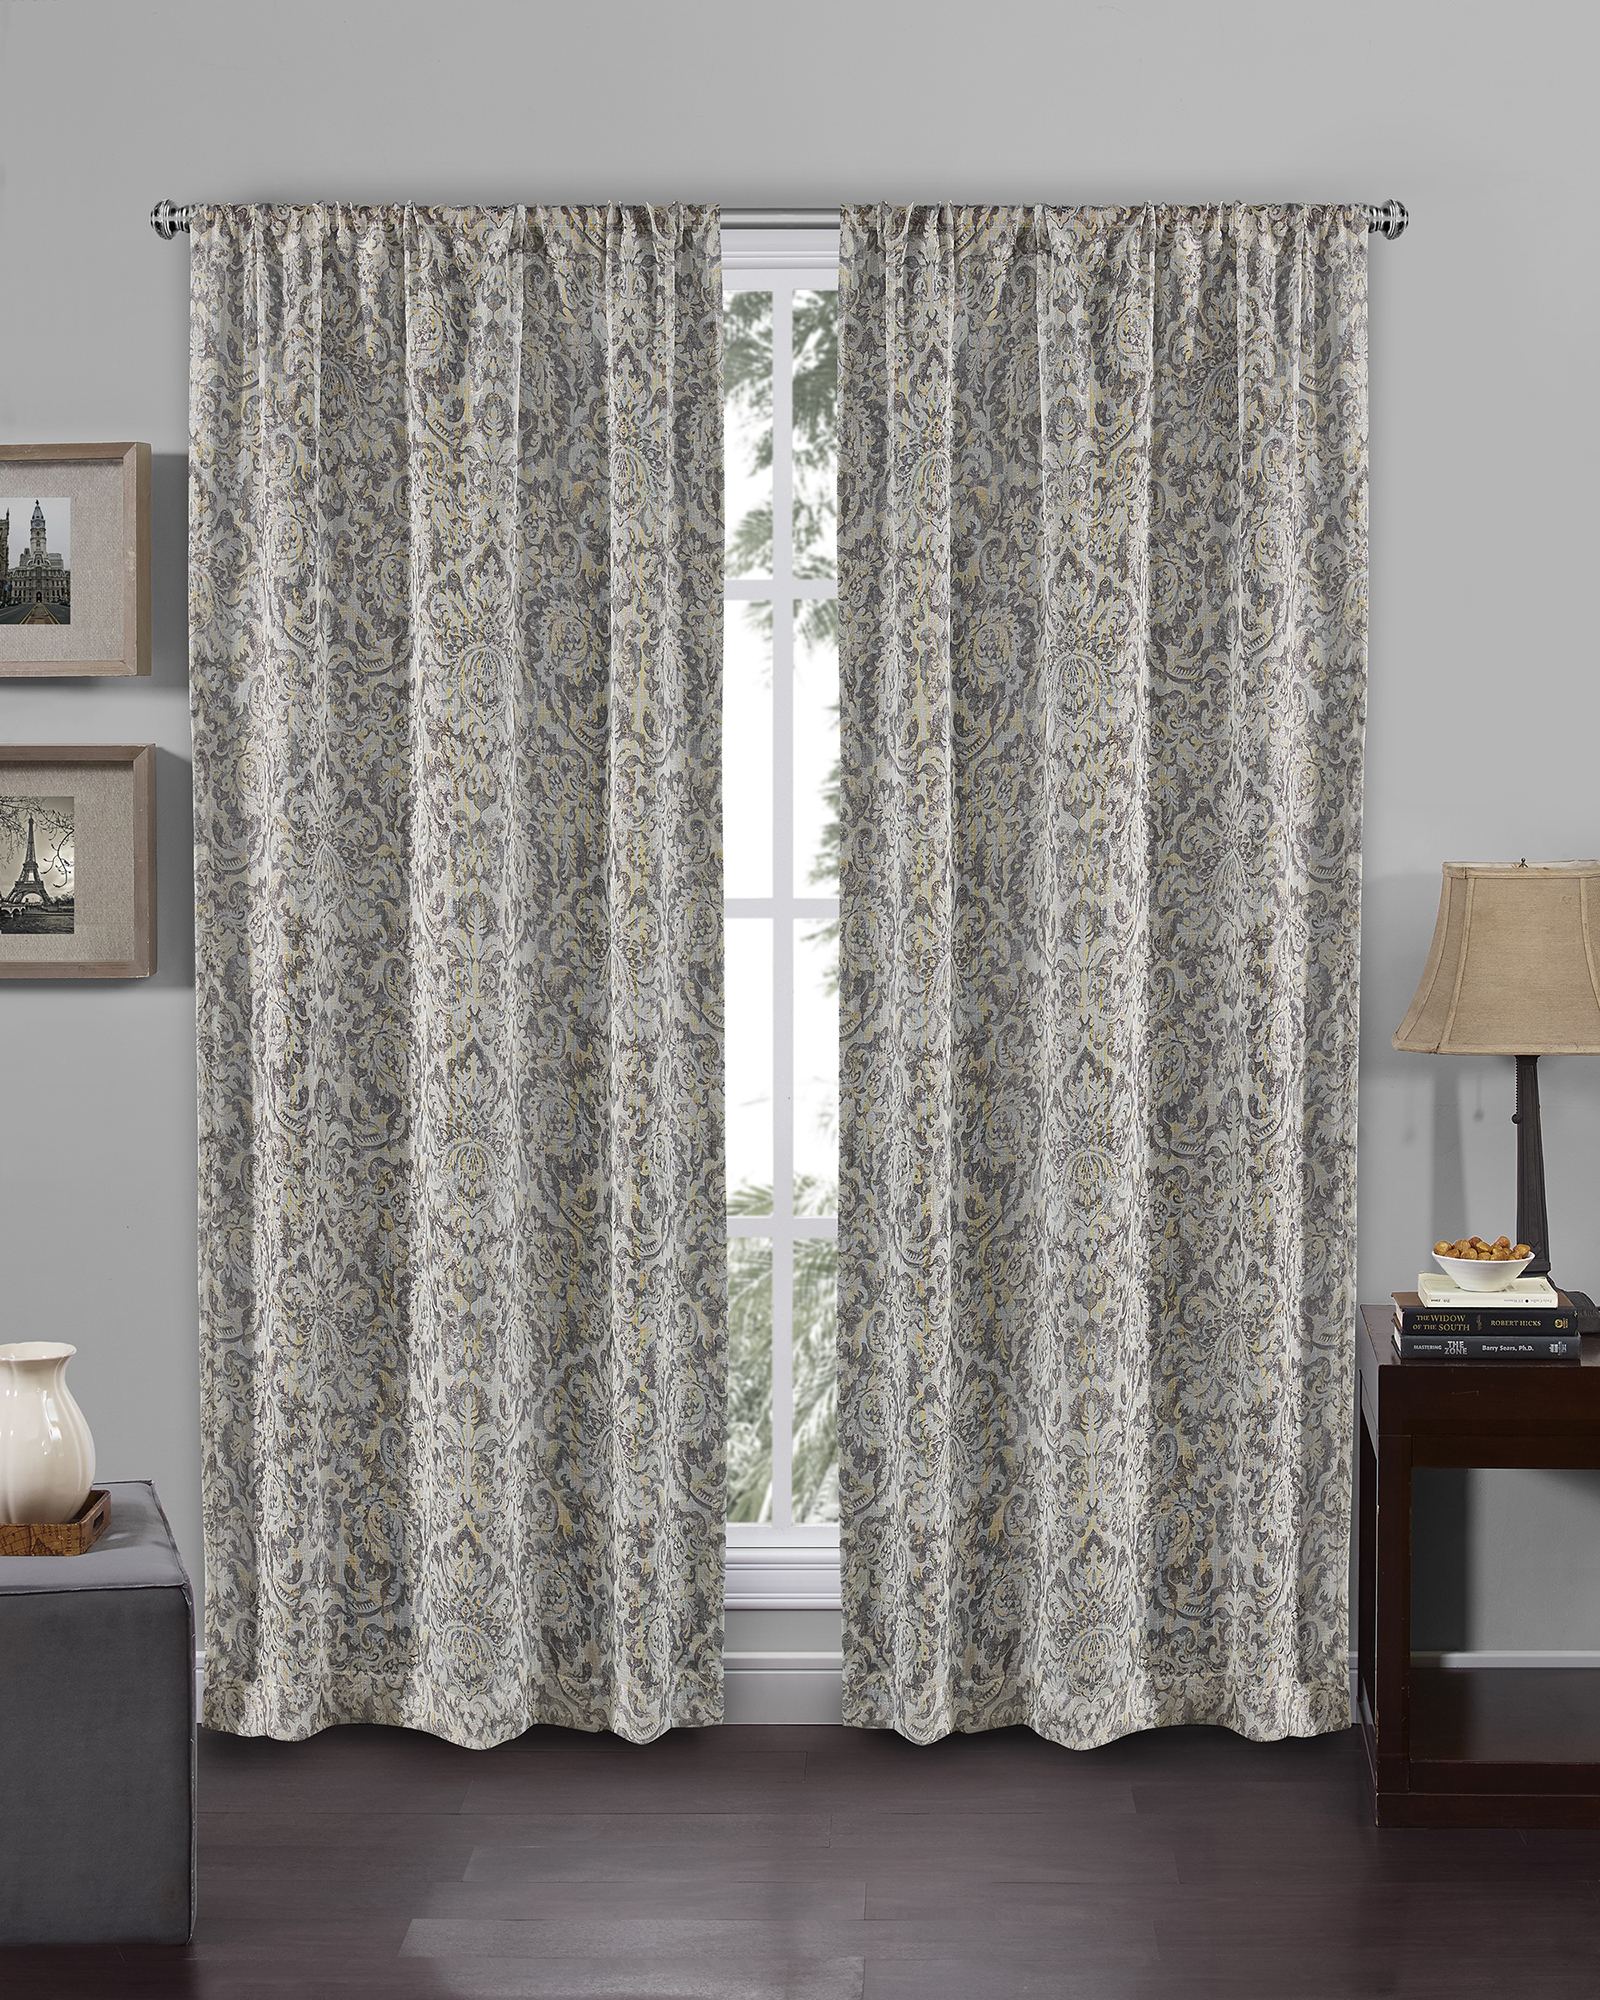 Curtains 96 Long Good Nicetown Sheer Window Curtain Panels Solid White Panels Drapes With